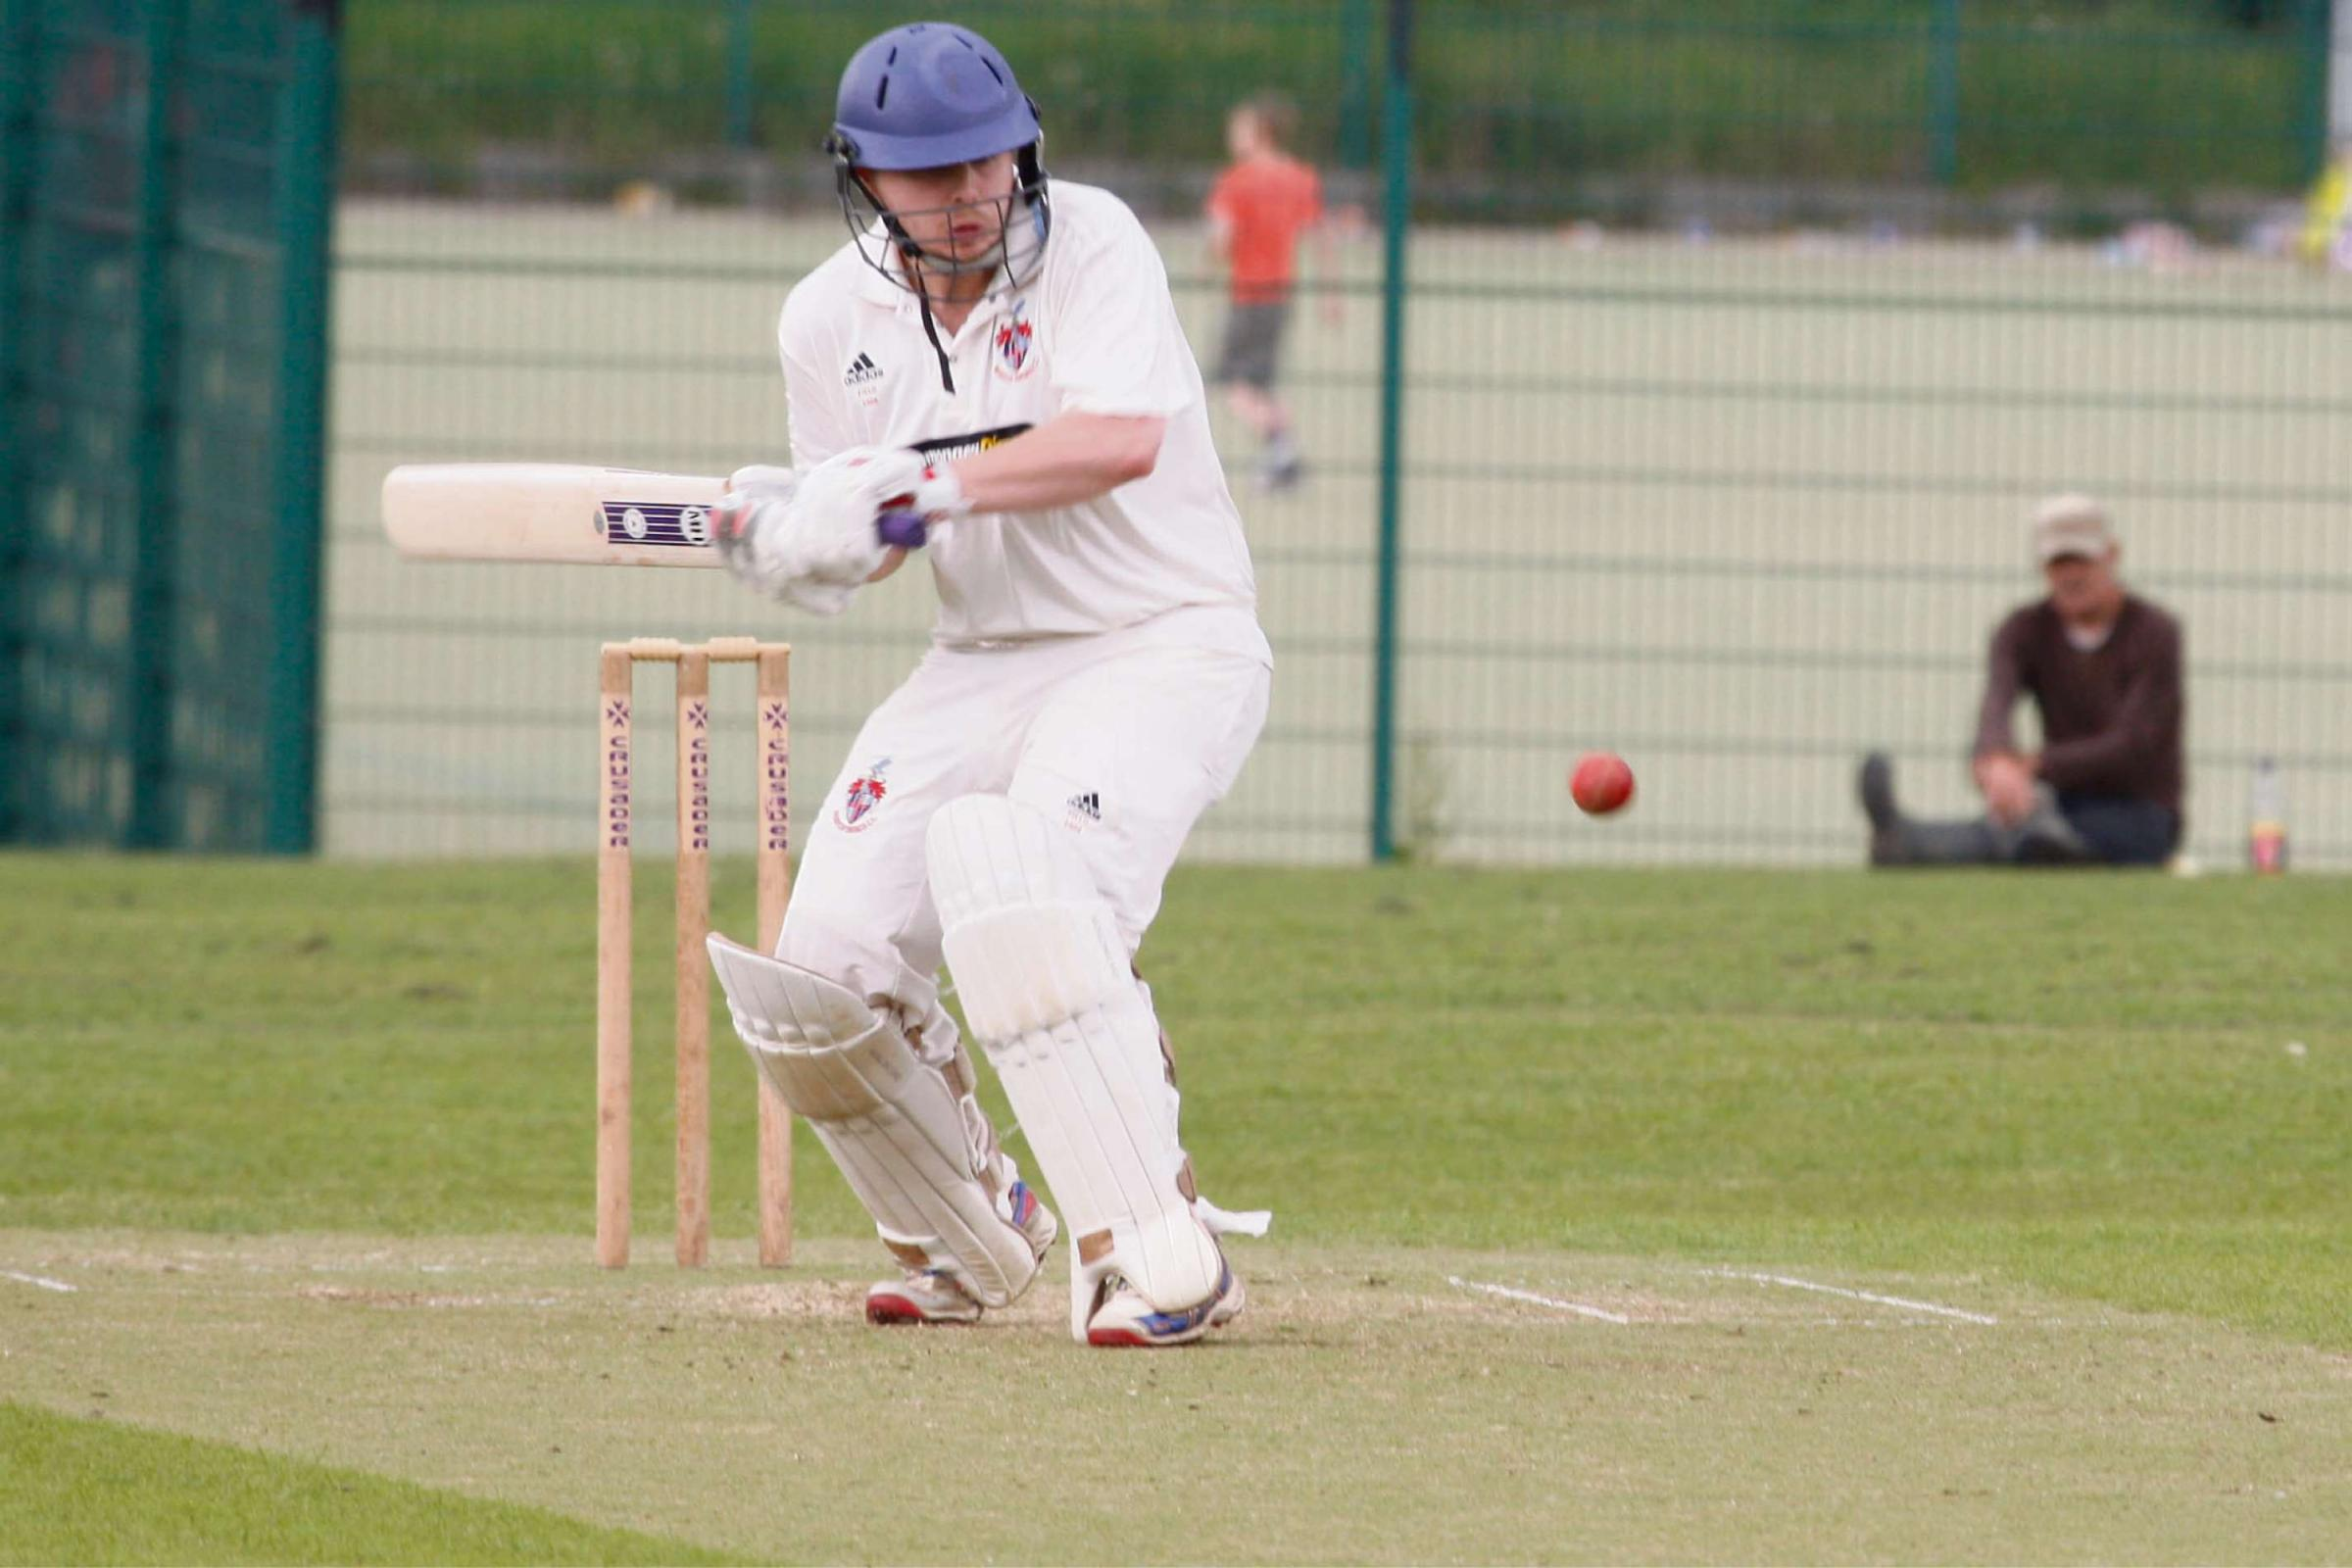 Tom Field in action for Redditch against Belbroughton. Picture: CRAIG ROSS